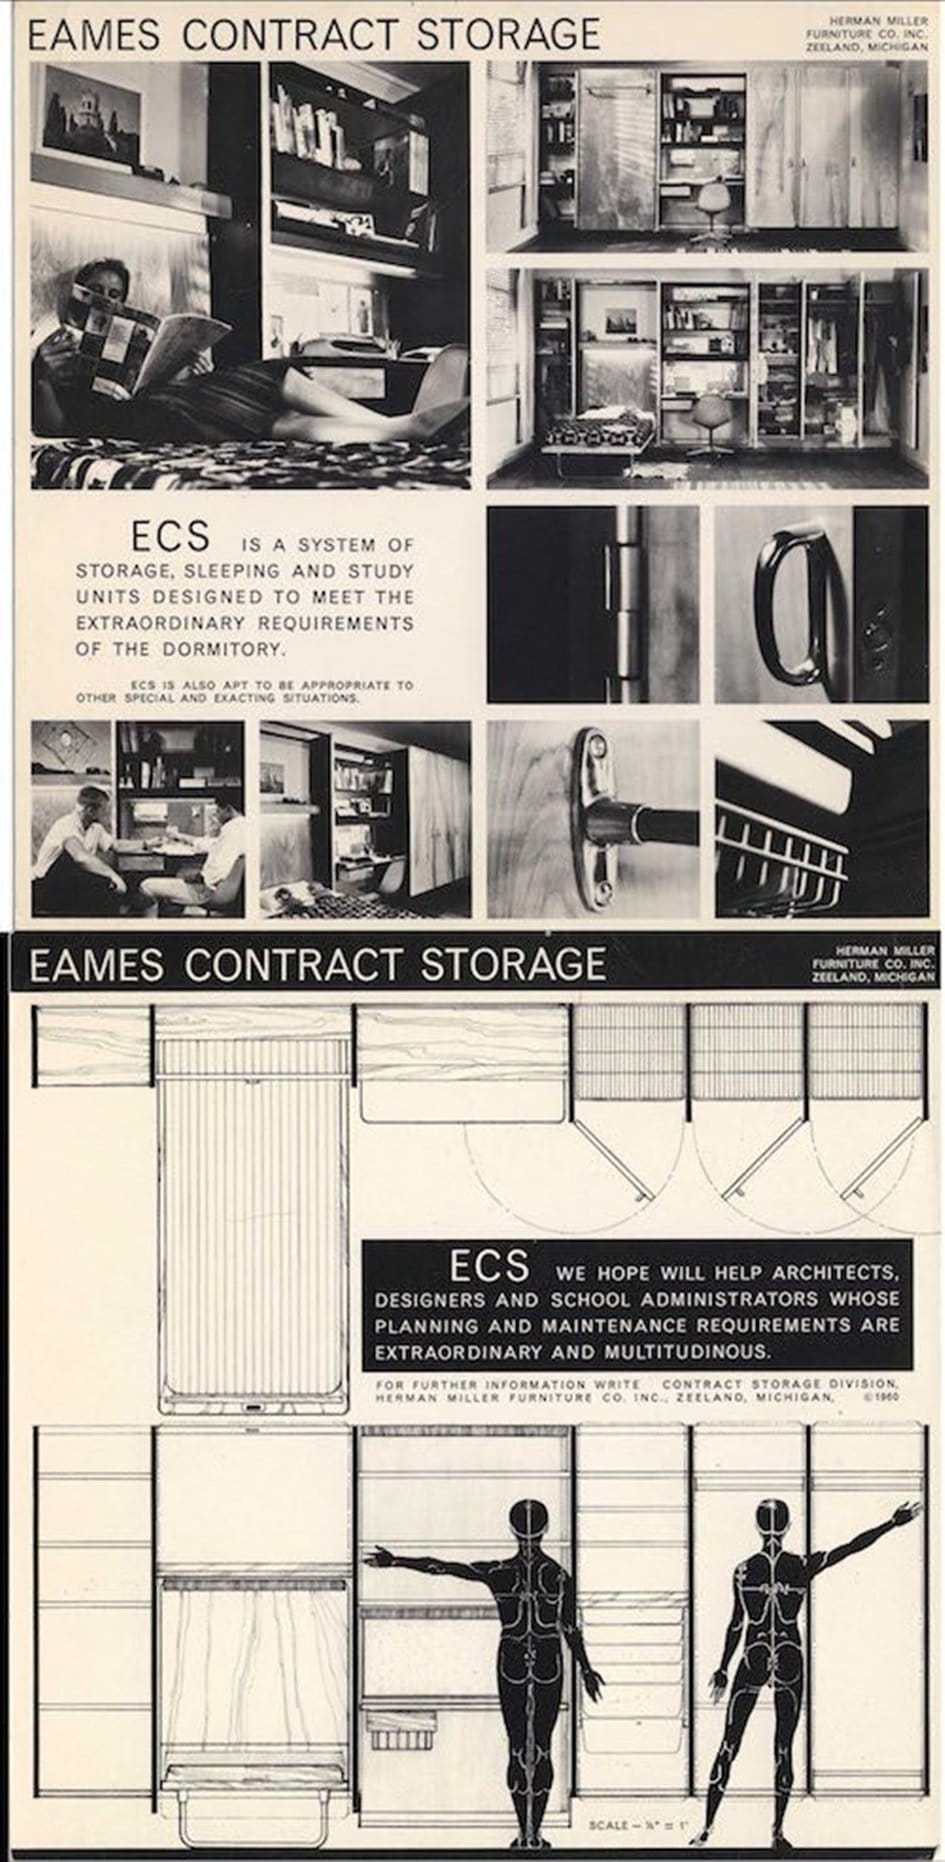 Eames_20Contract_20Storage.0